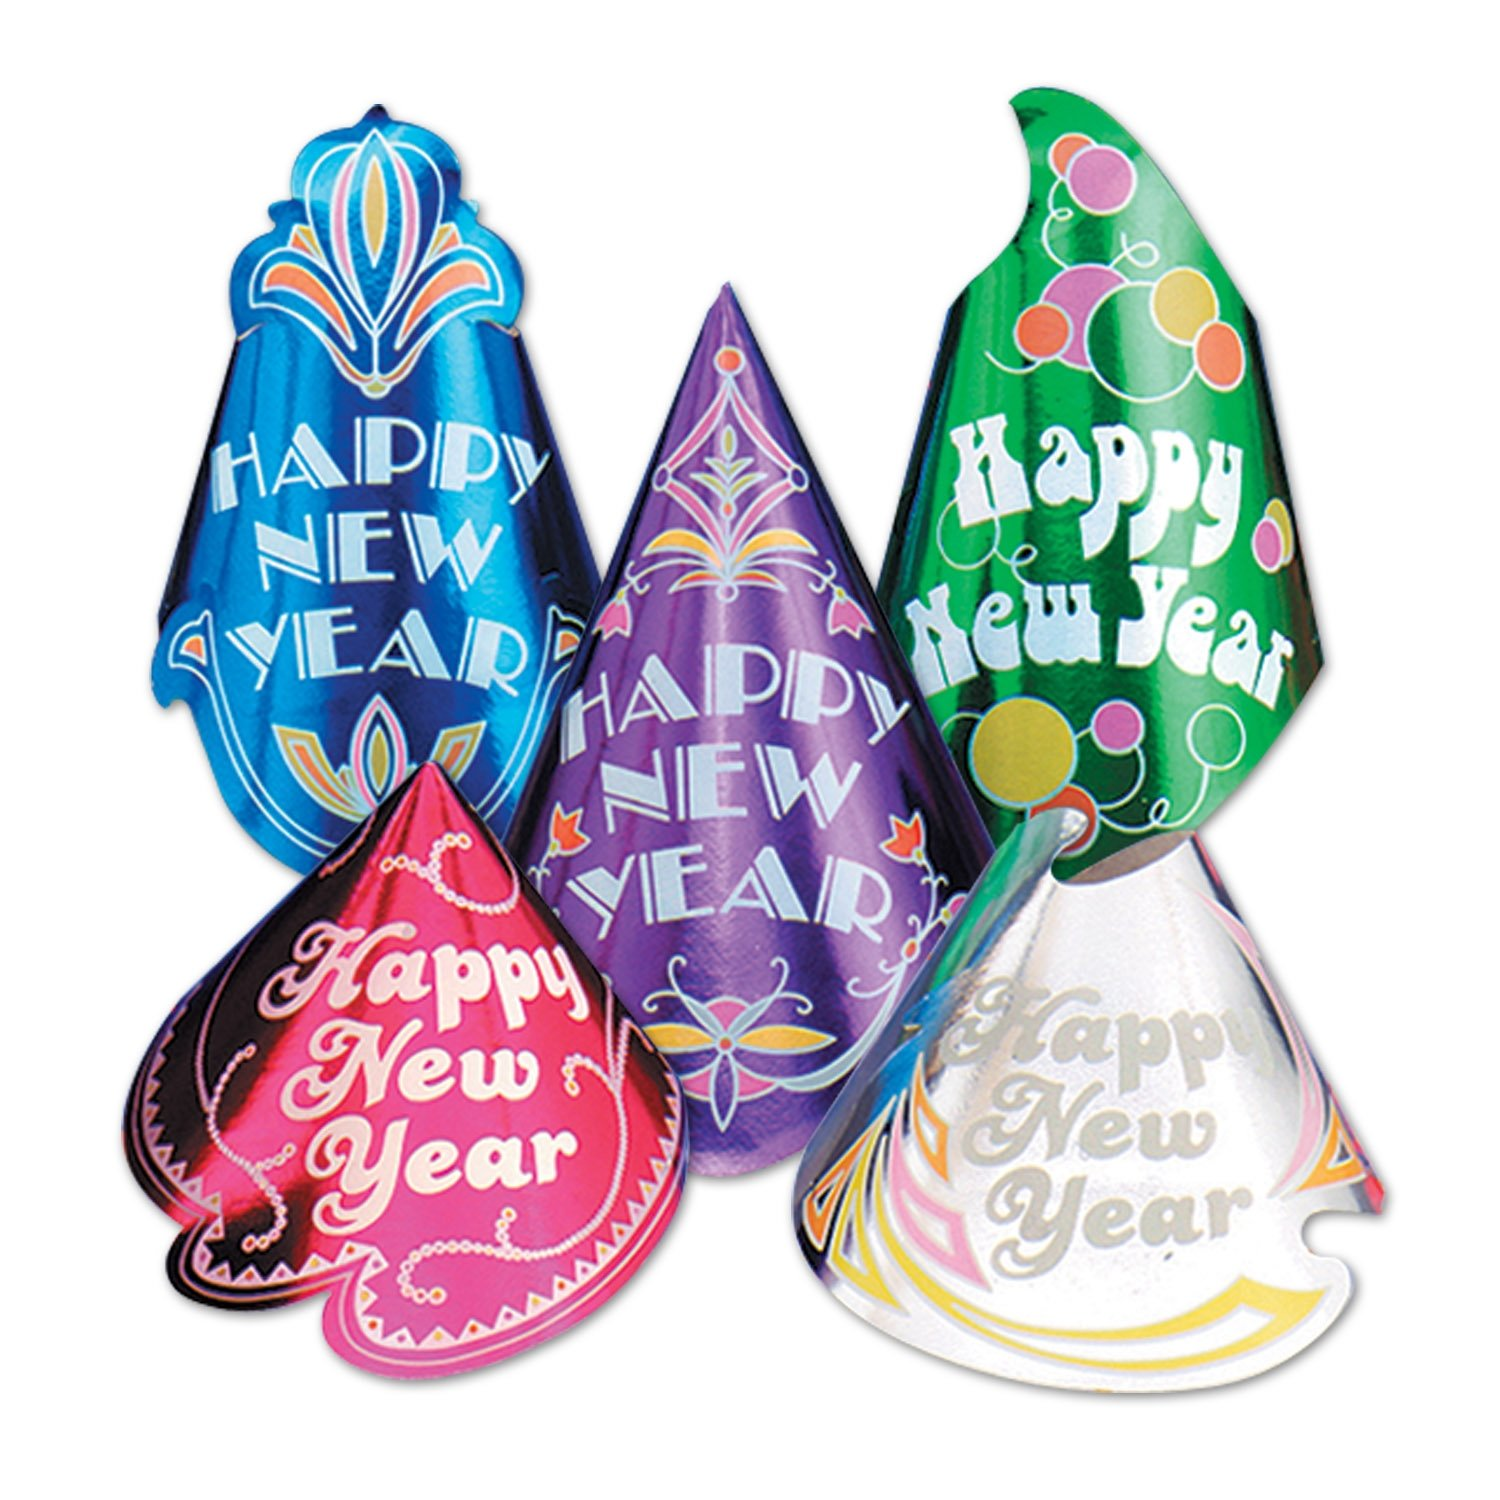 Beistle 88825-50 50-Piece Champagne Hat Assortment The Beistle Company